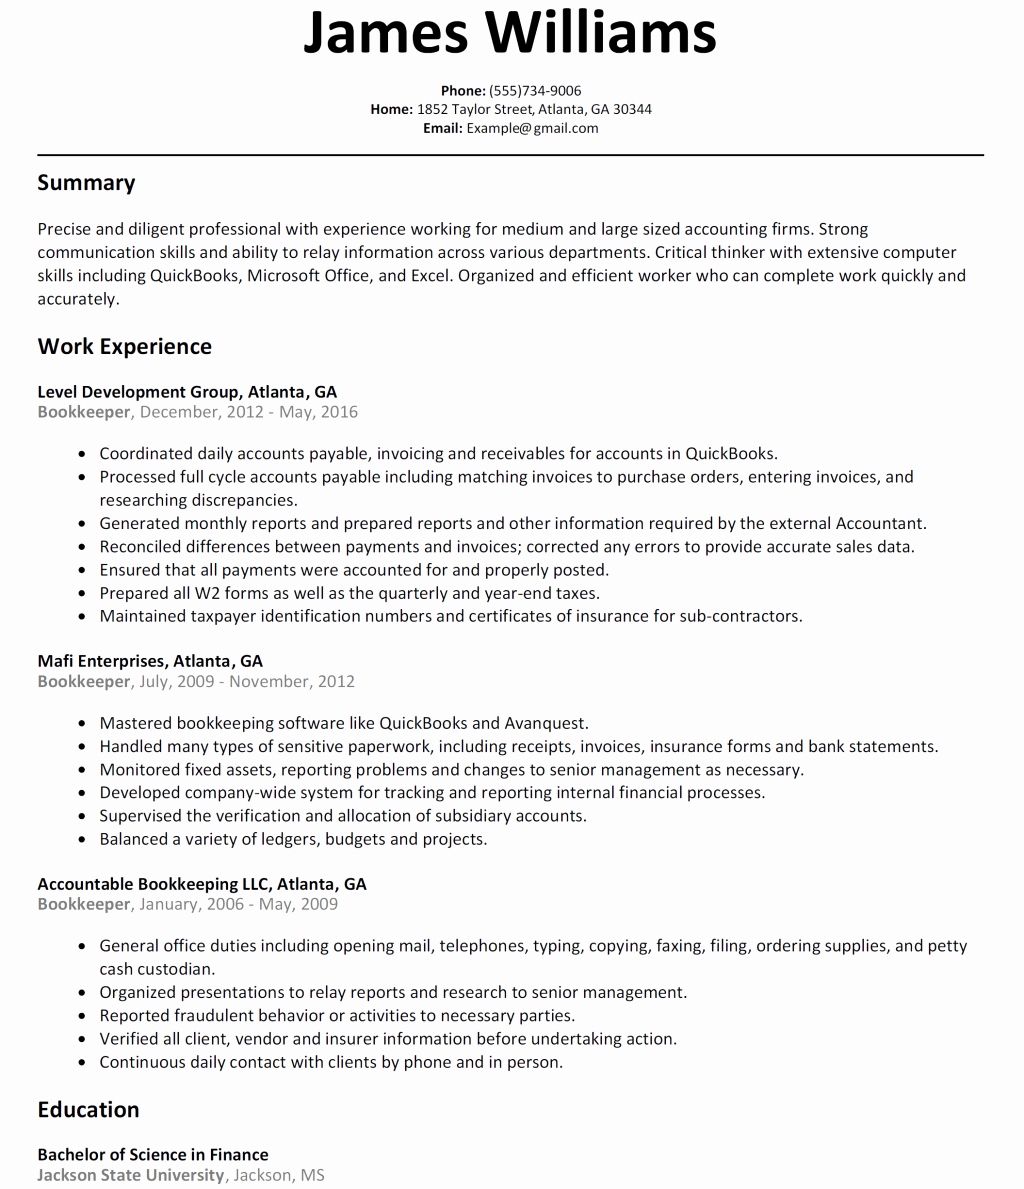 Patent Infringement Letter Template - General Cover Letter Examples Samples